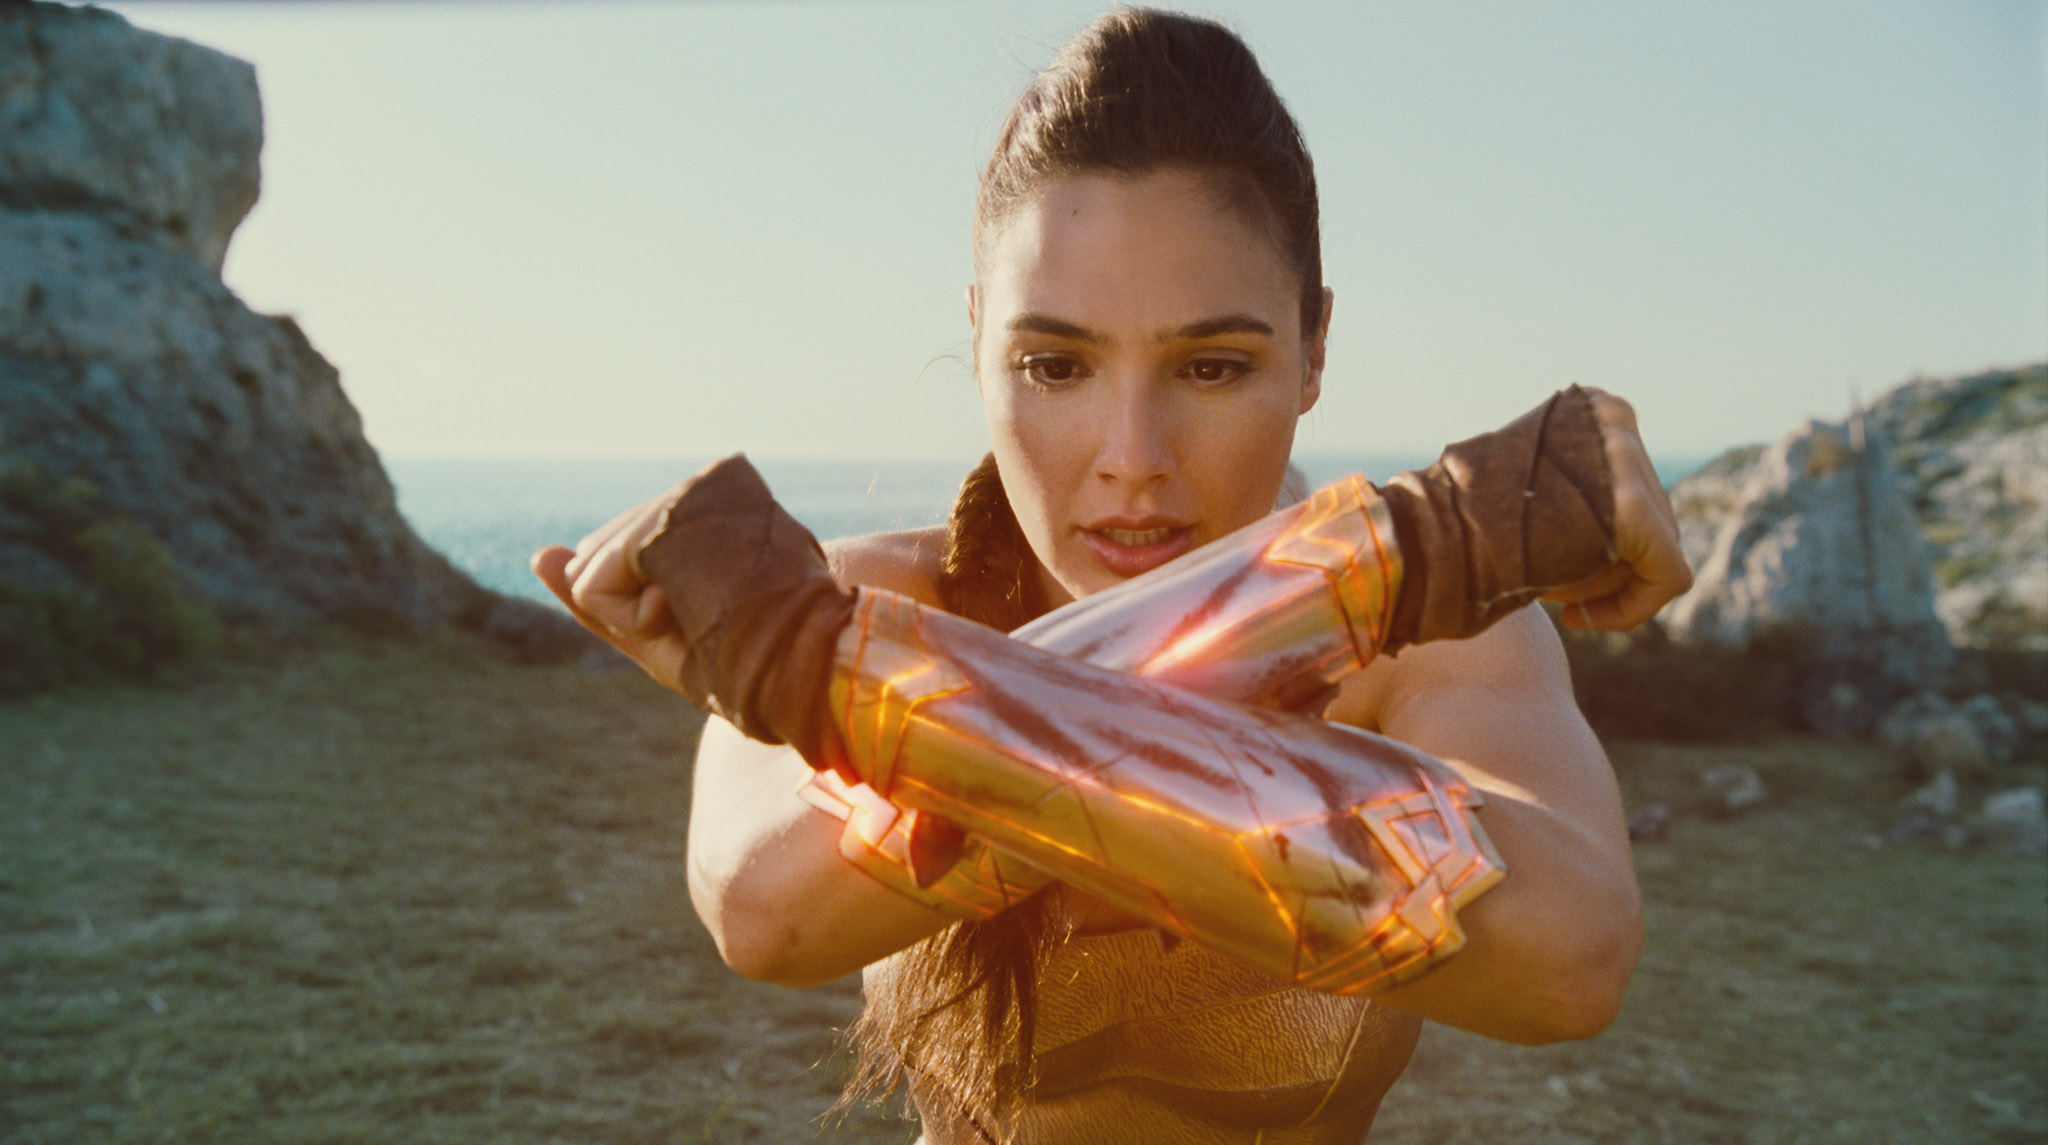 POS and Promotional set up for Wonder Woman